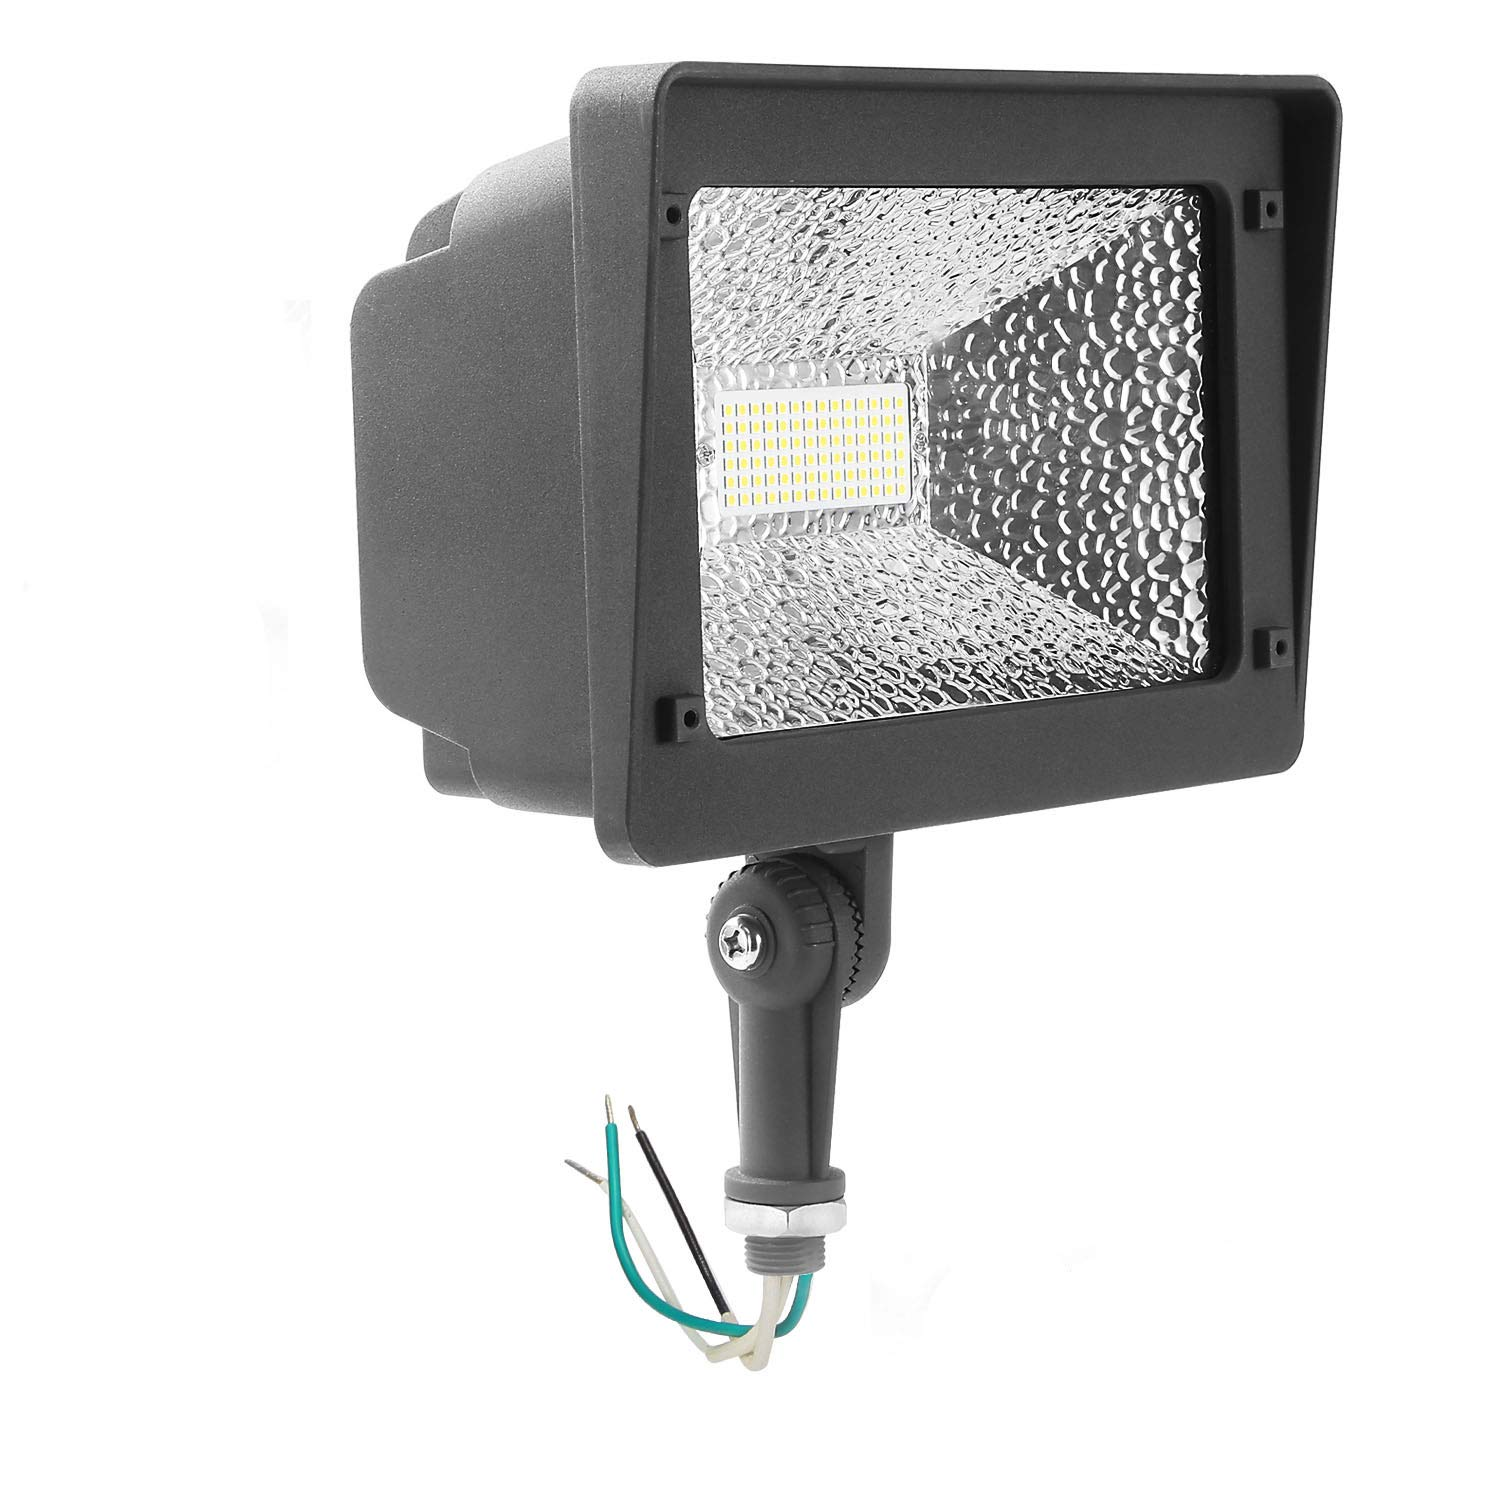 Cinoton LED Floodlight with Knuckle, 50W Security Outdoor Lighting (250W Equivalent), 5500 Lumen, 5000K (Crystal White Glow), Waterproof, IP65, 100-277v, Instant On (1 Pack, NOT Photocell)